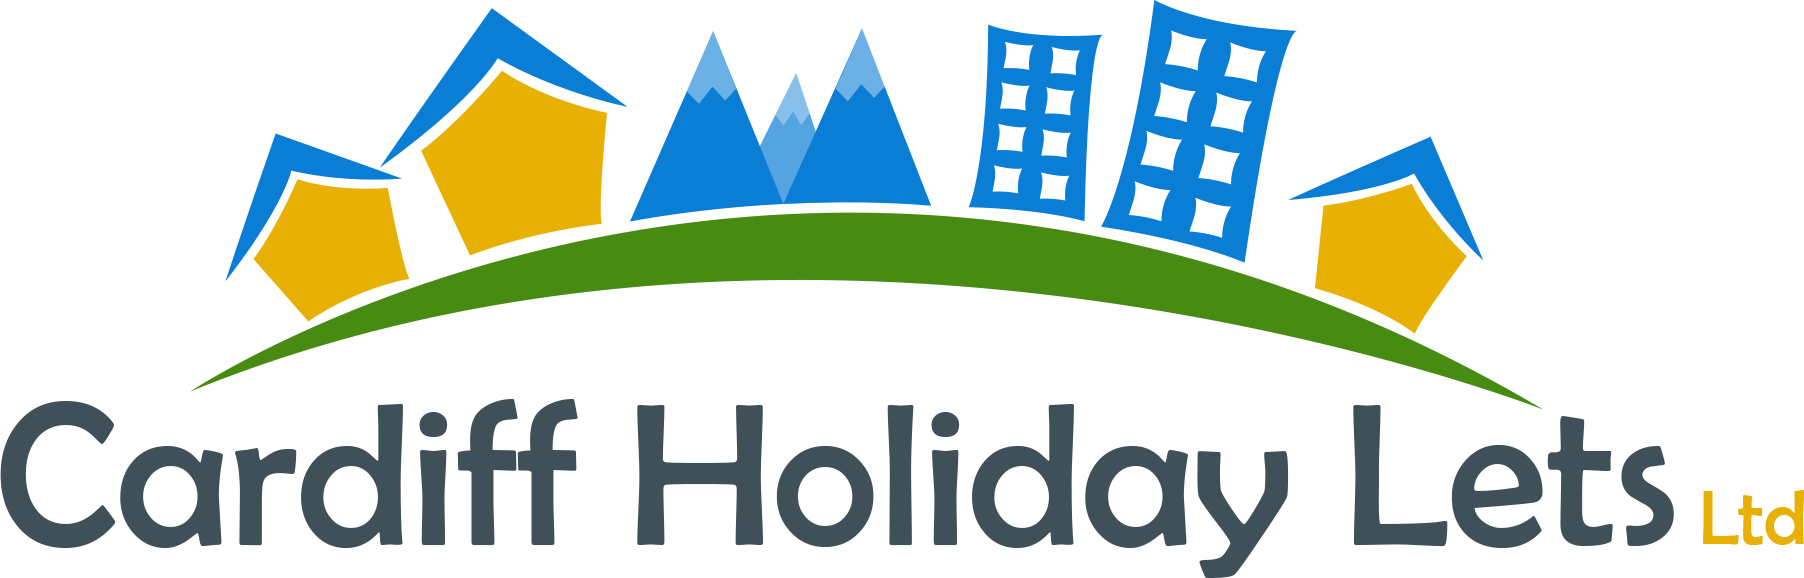 Logo of Riverbank Penthouse and Apartments (C/o Cardiff Holiday Lets Ltd)